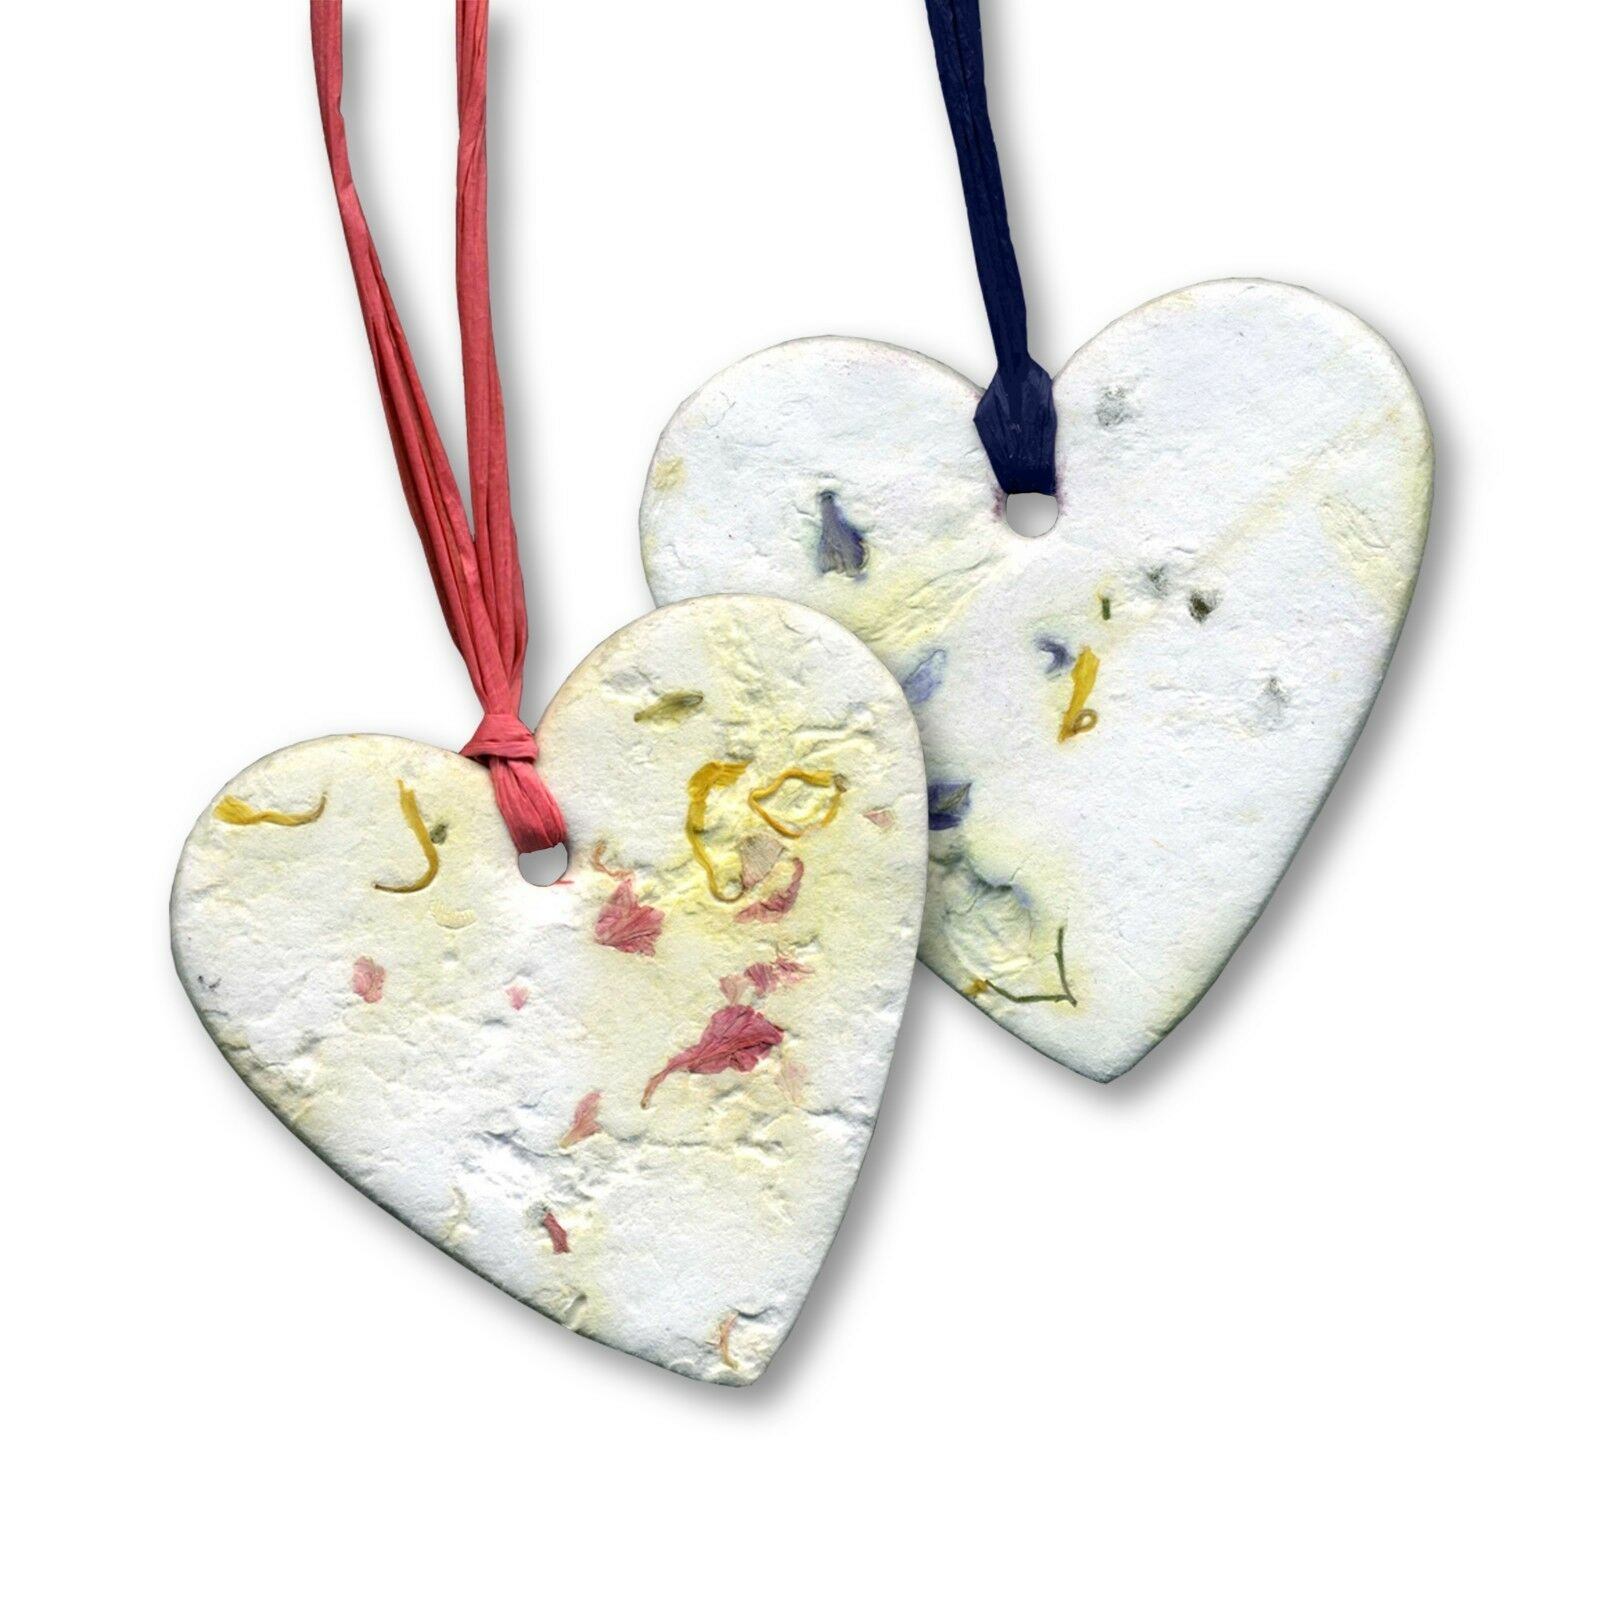 100 Blooming Flower Ornaments for Weddings Anniversaries, Many Shapes Available